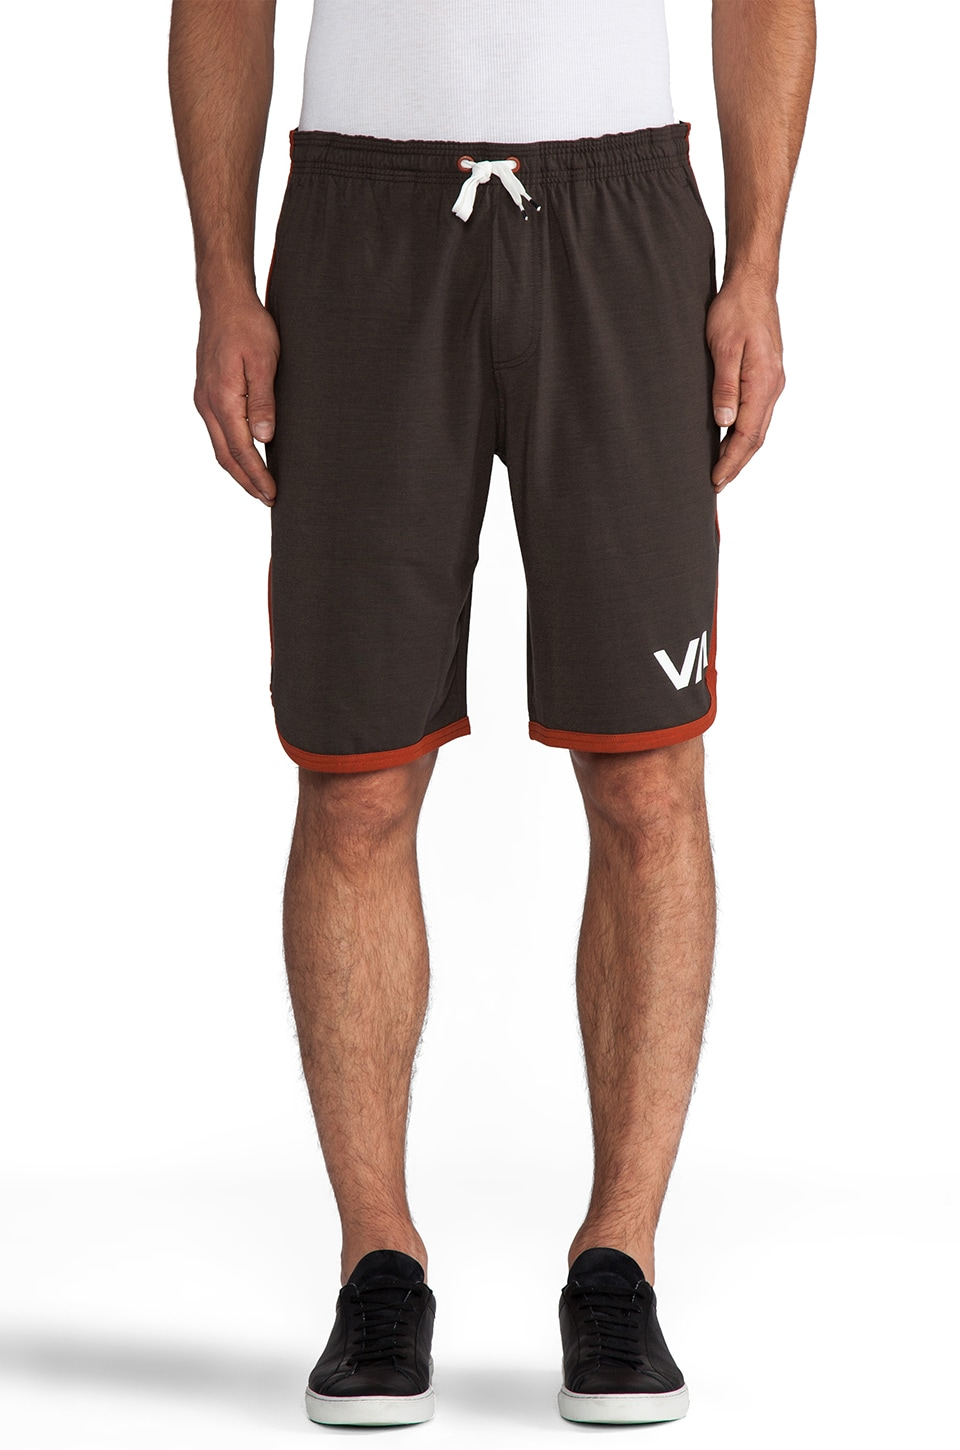 RVCA VA Sport Short in Dark Charcoal